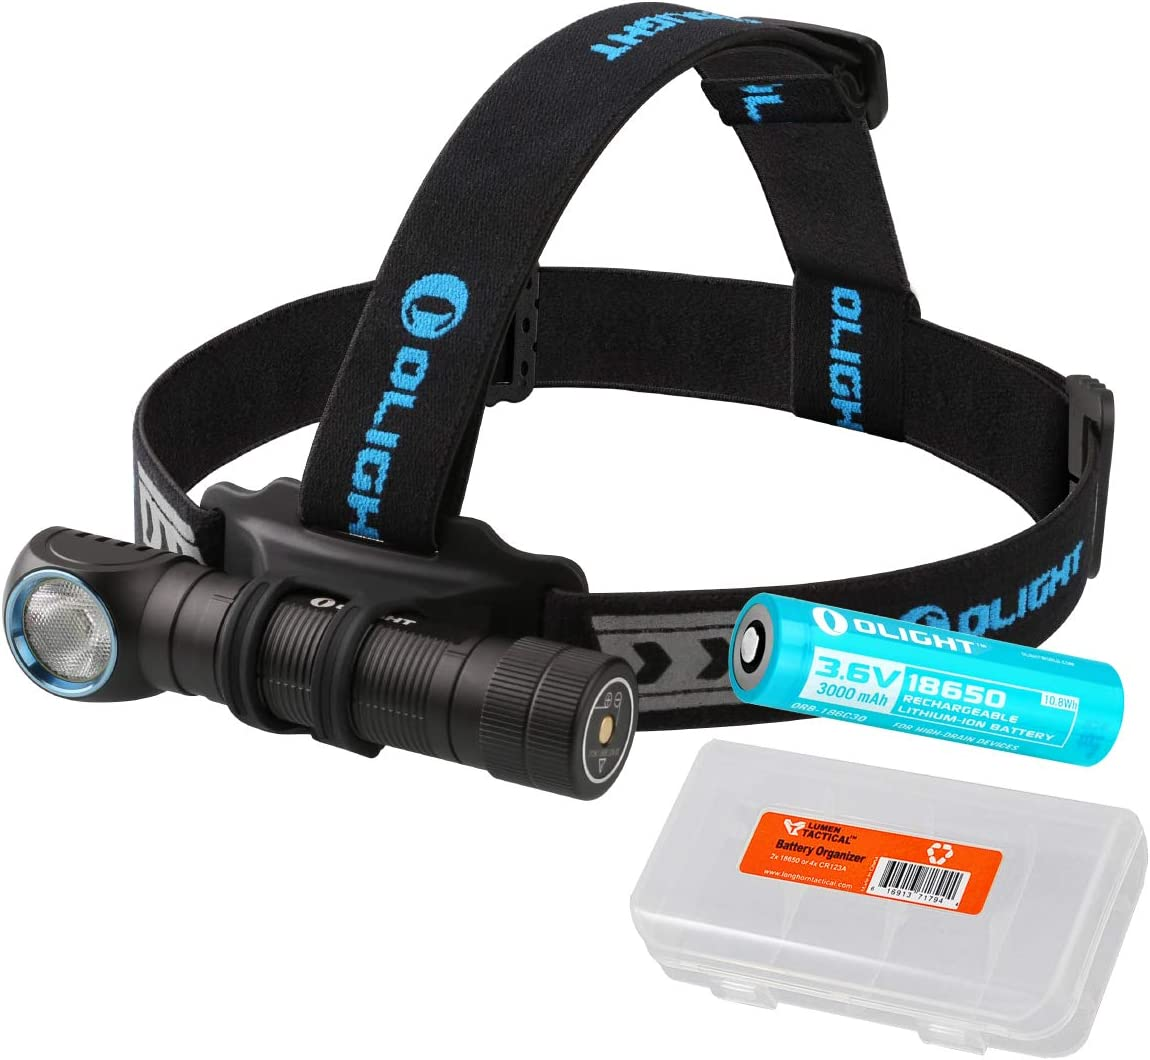 OLIGHT H2R LED Rechargeable Headlamp – Available in 2300 Lumens Cool White or 2000 Lumens Neutral White LED Plus Lumen Tactical Battery Organizer